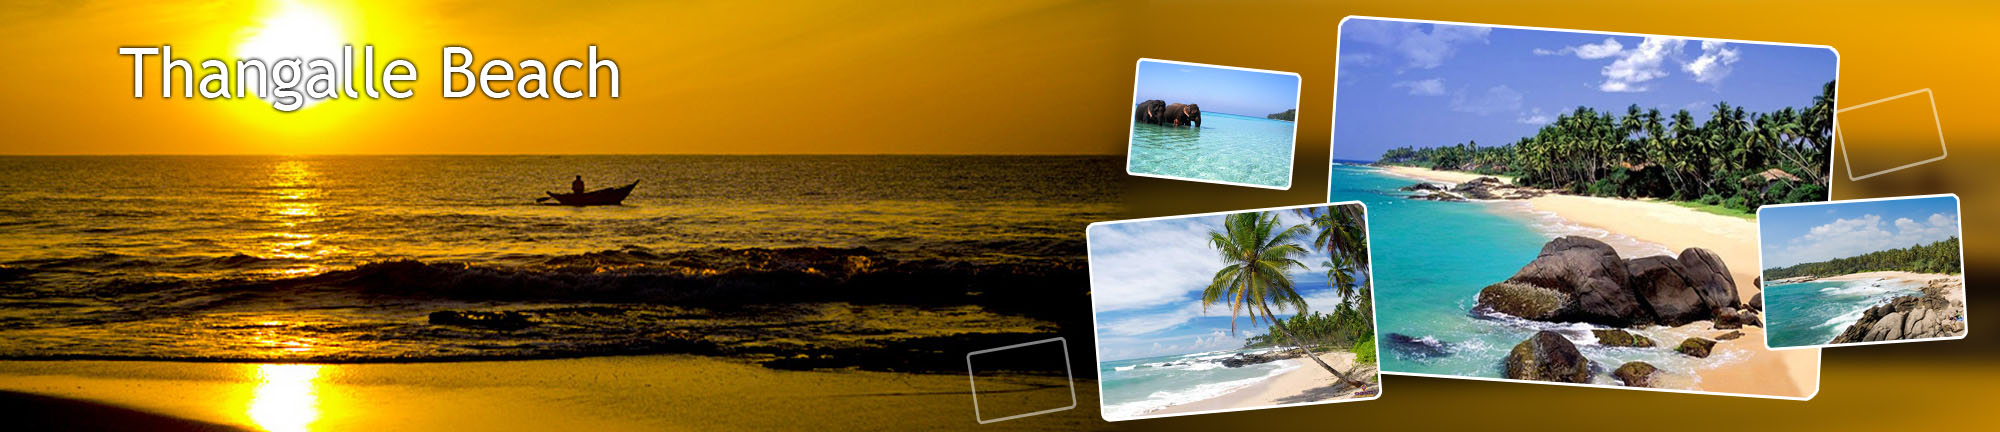 inora-travel-lanka-thangalle-banner